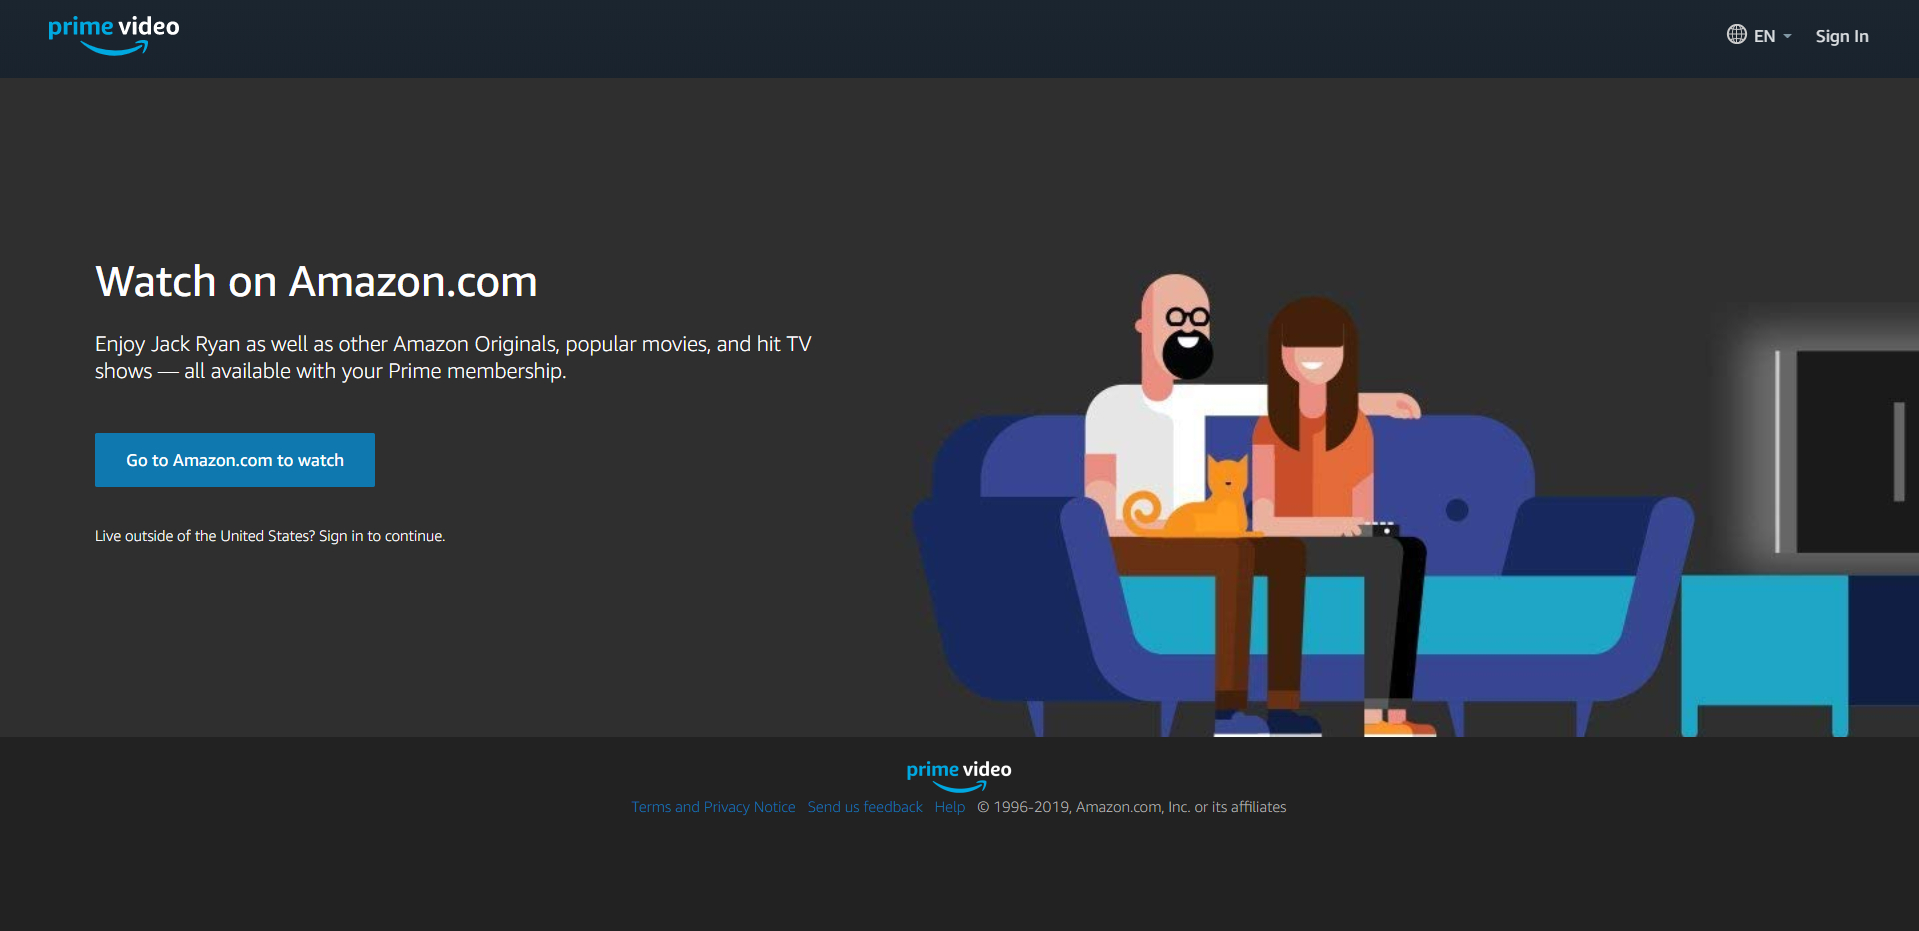 A screenshot of the Prime Video home page